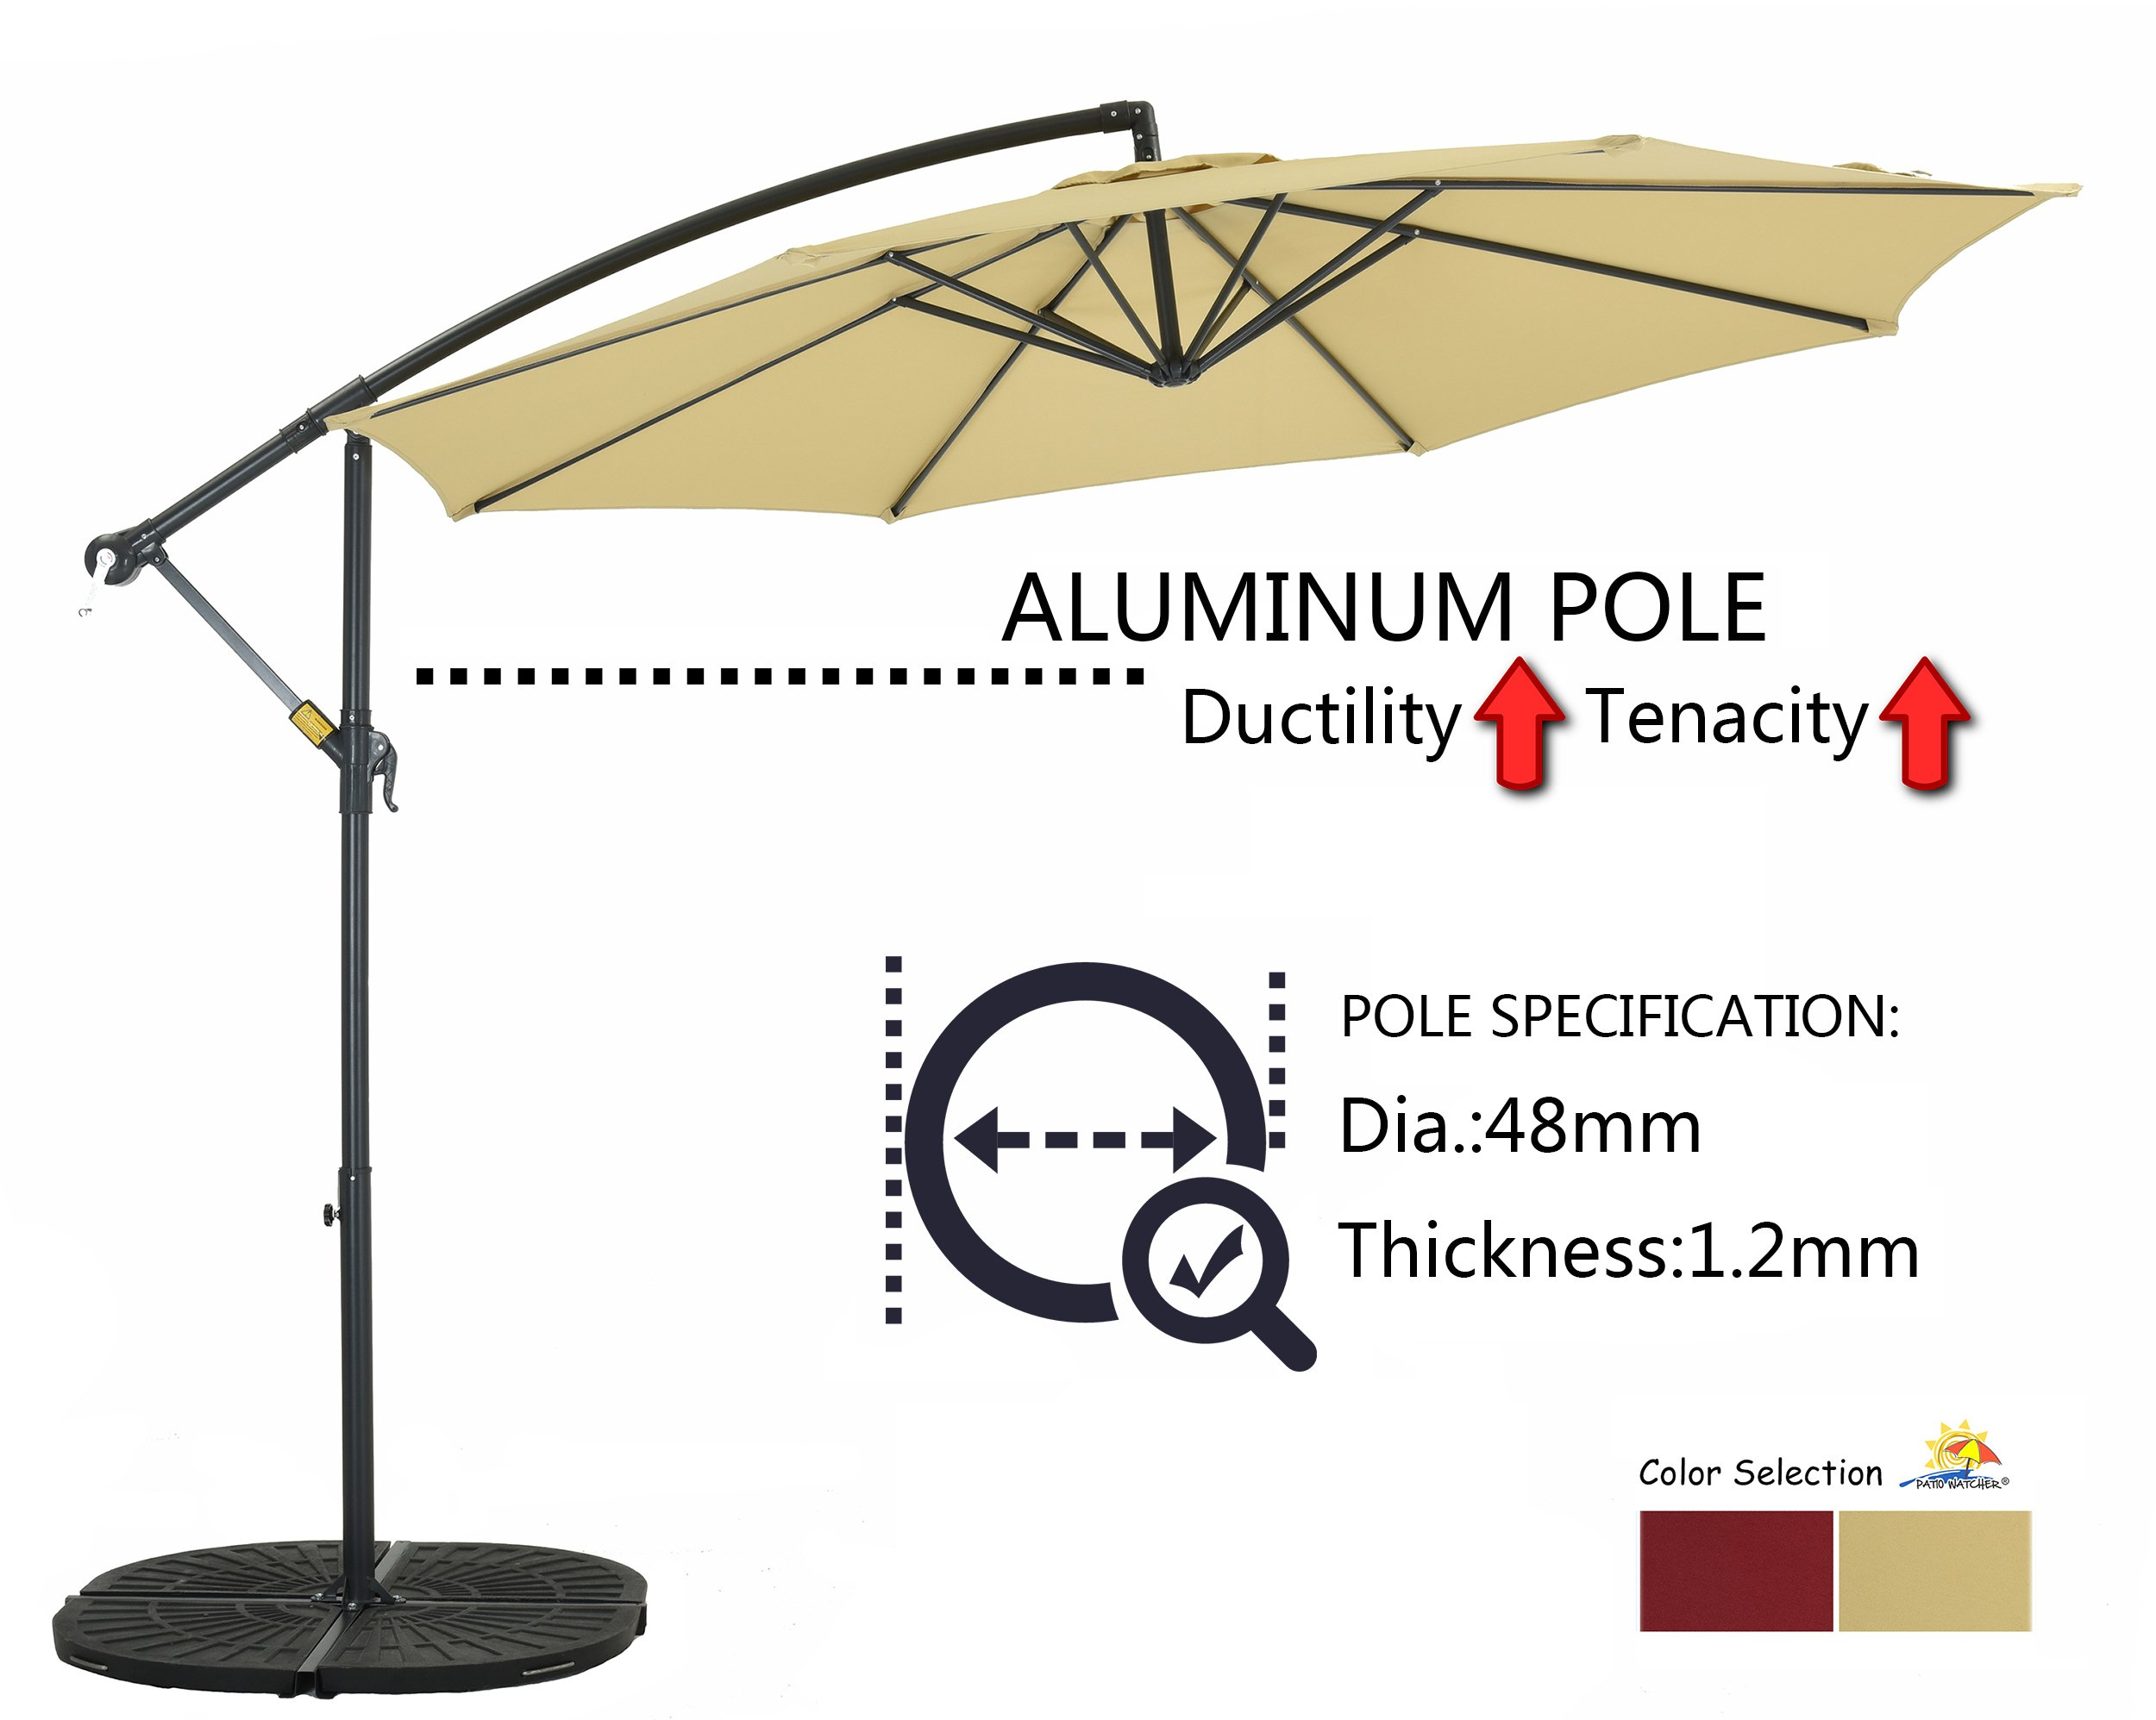 Patio Watcher 10 Ft Market Offset Umbrella, Cantilever aluminum Umbrella with Crank, UV Resistant, Water resistant PU, Coated Polyester, Air Vented Top, Beige